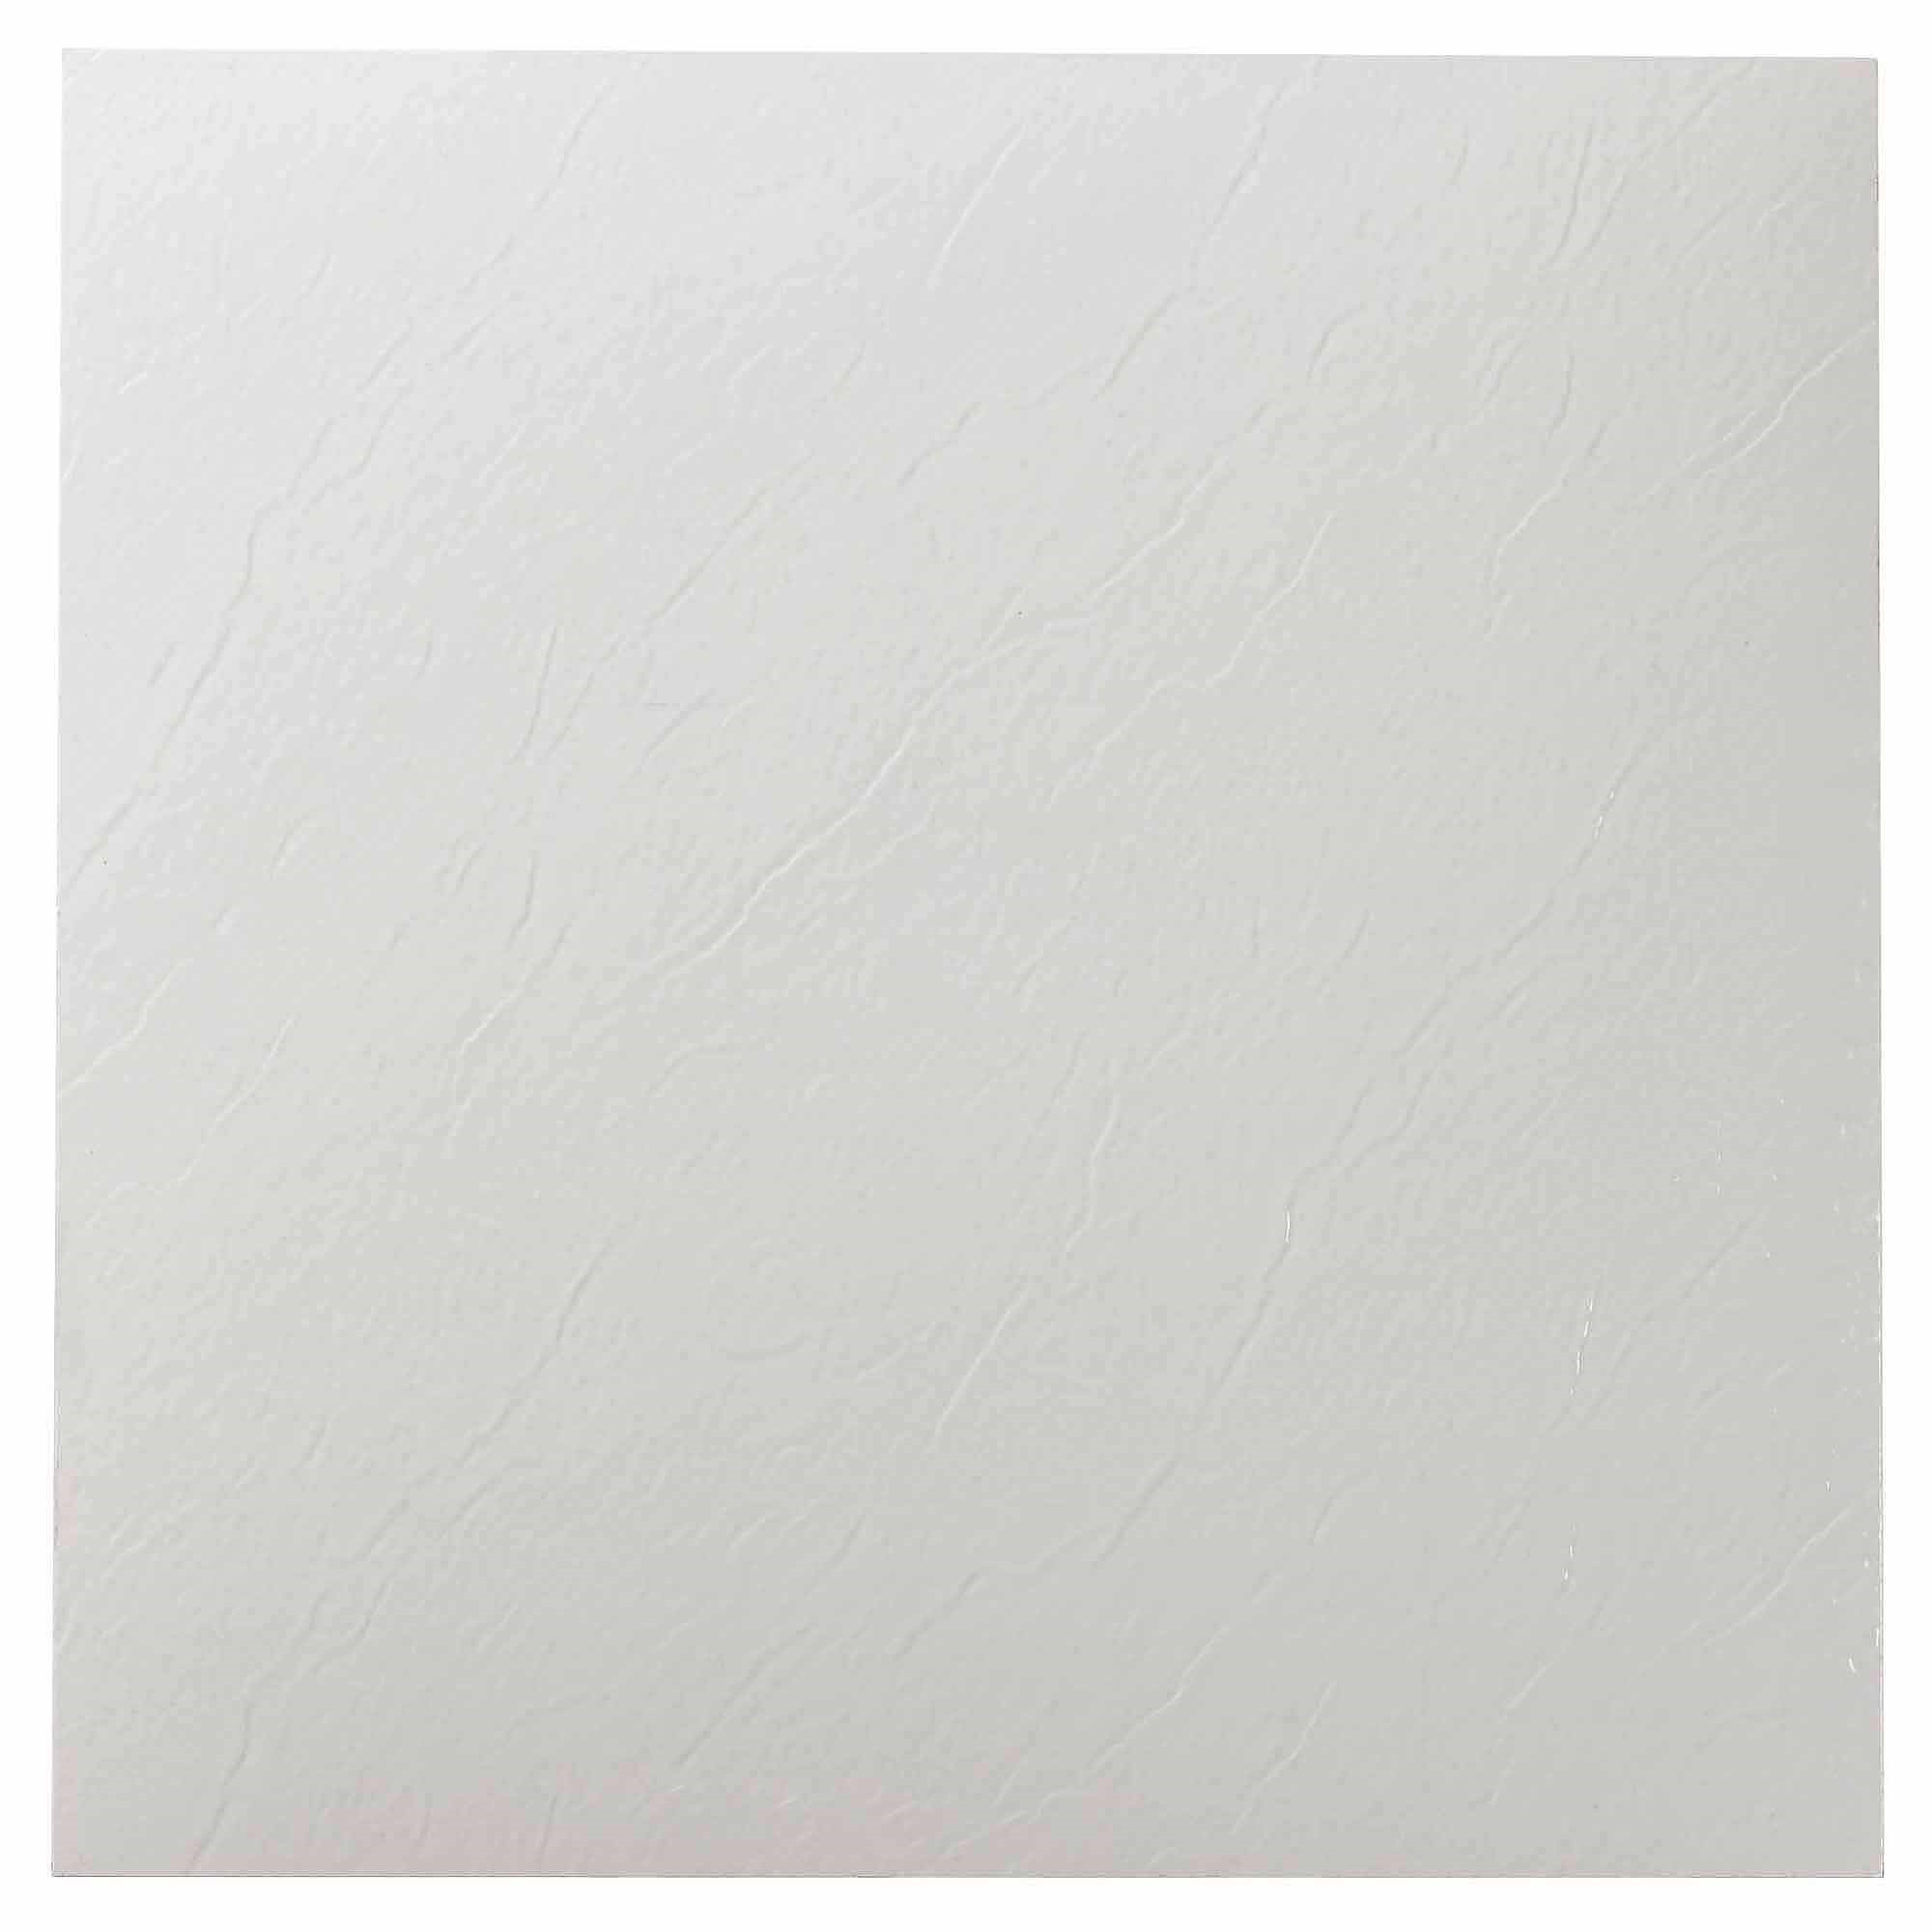 "Nexus White 12"" x 12"" Self-Adhesive Vinyl Floor Tile"